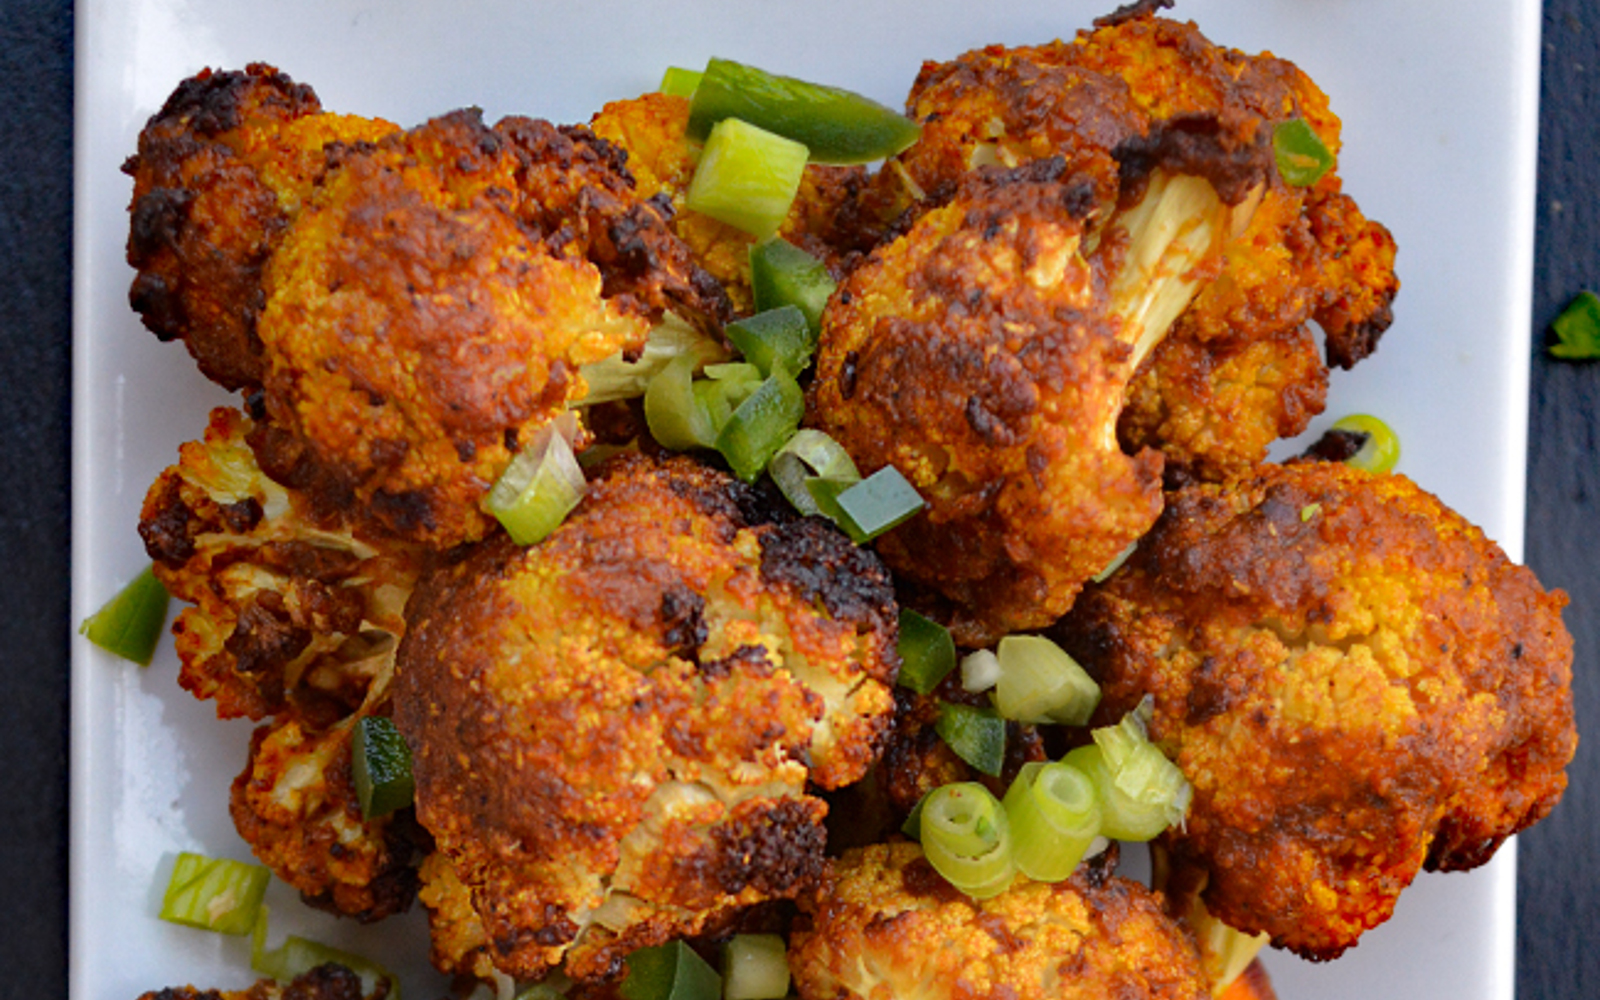 Vegan Gluten-Free Thai BBQ Cauliflower with green onion